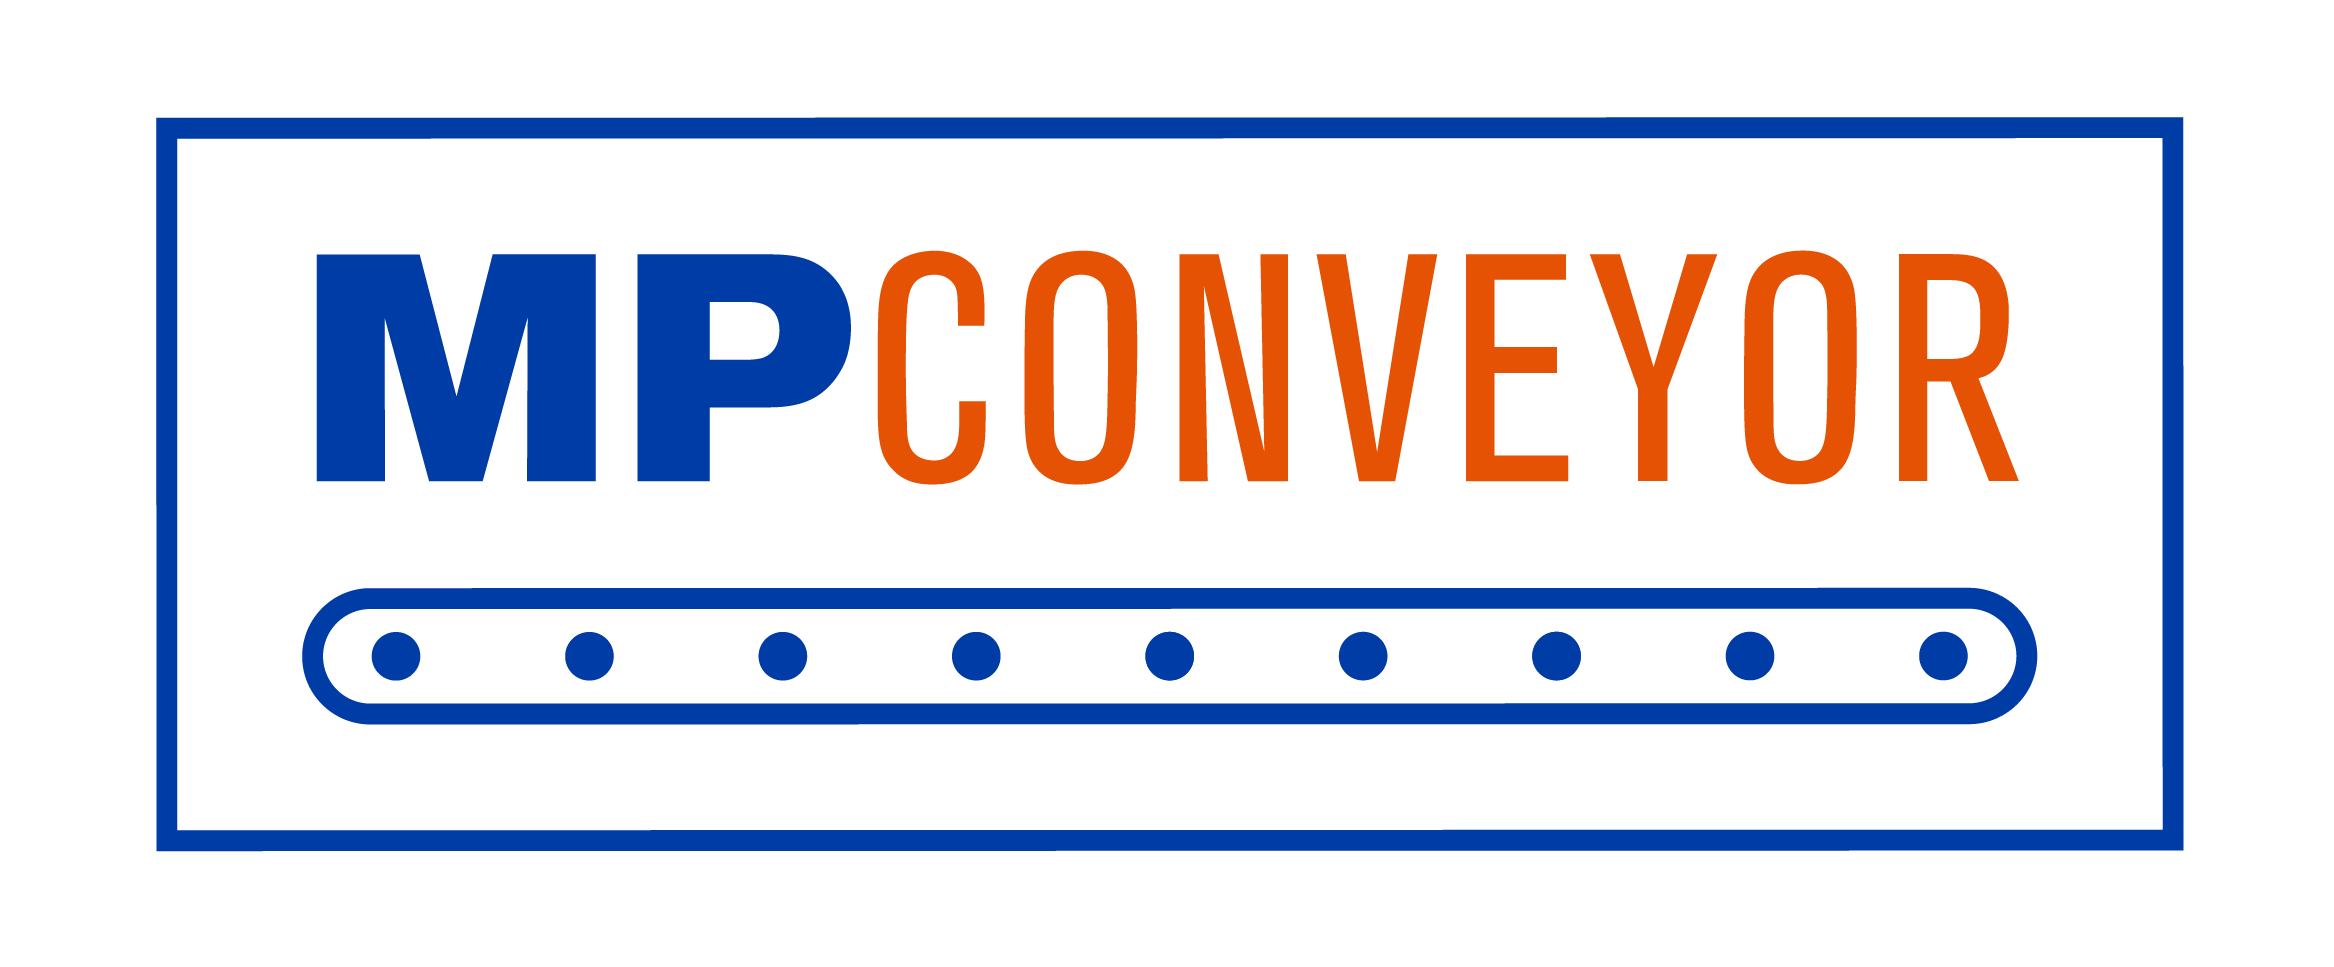 MP Conveyor